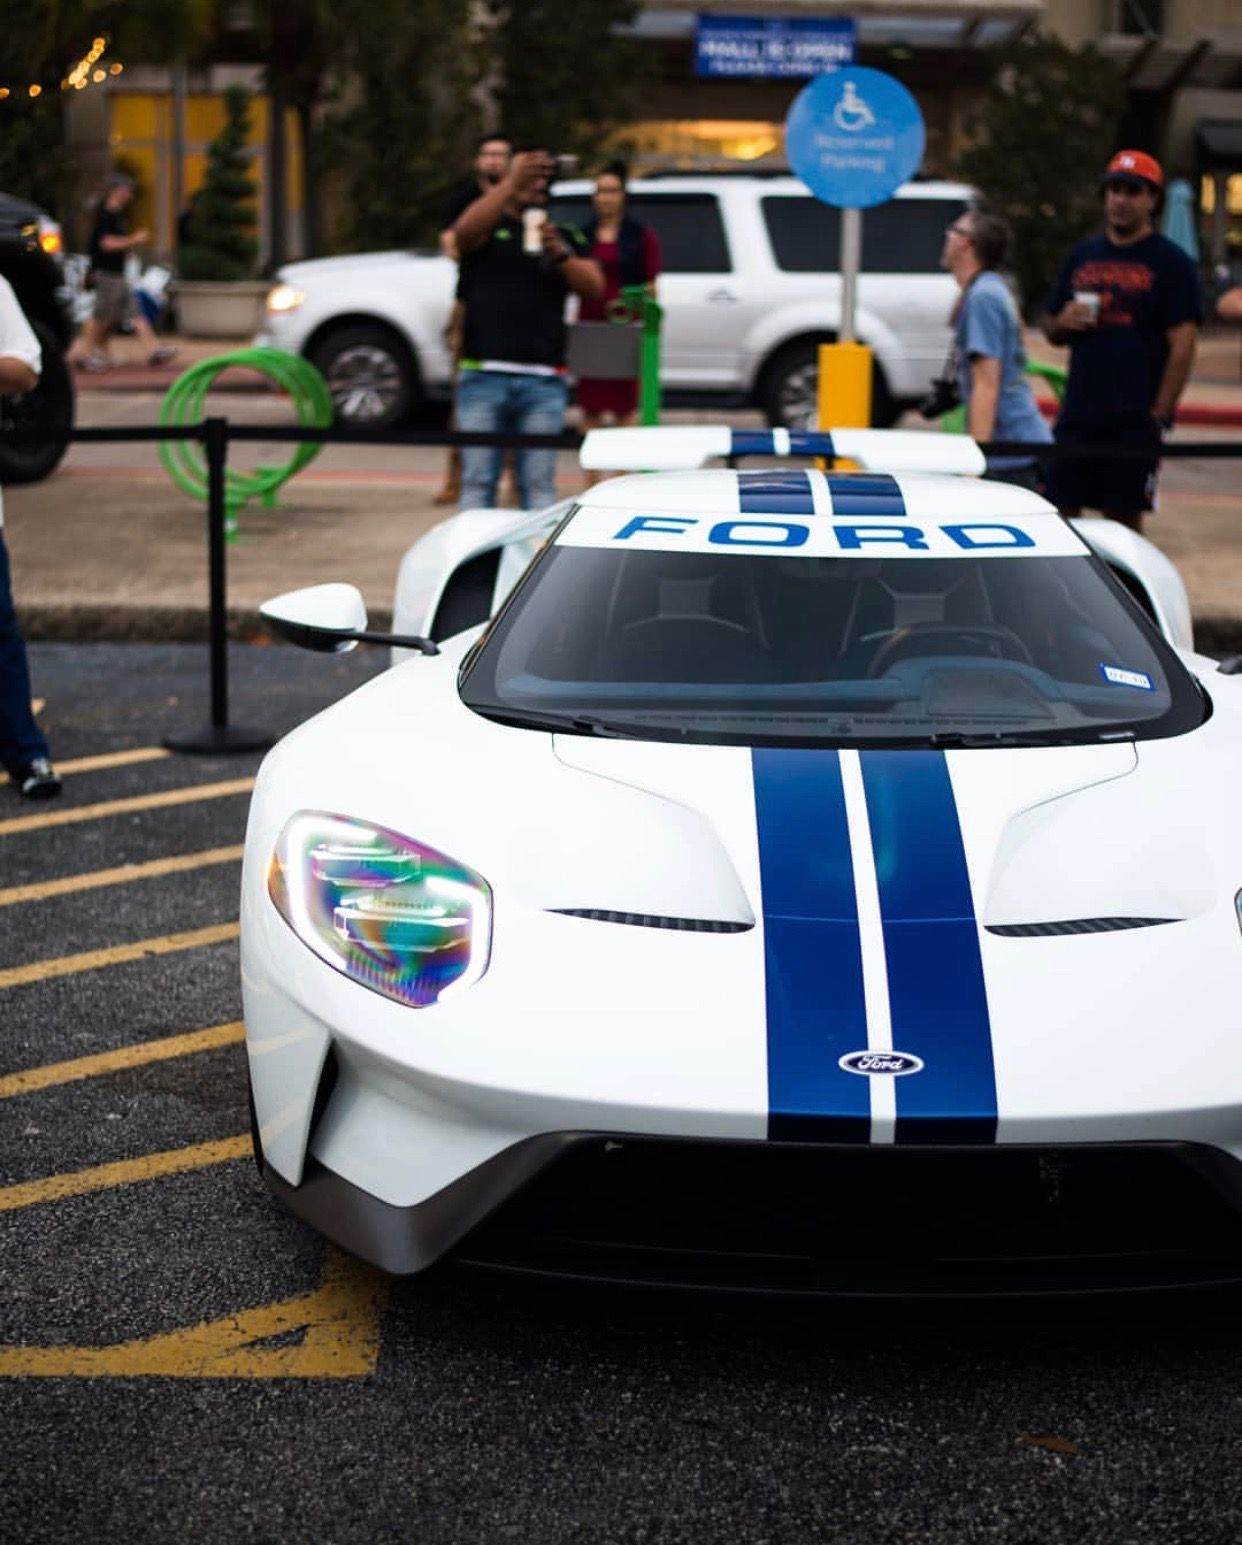 Ford Gt Painted In White W Blue Central Stripes Photo Taken By Ldv_photography On Instagram